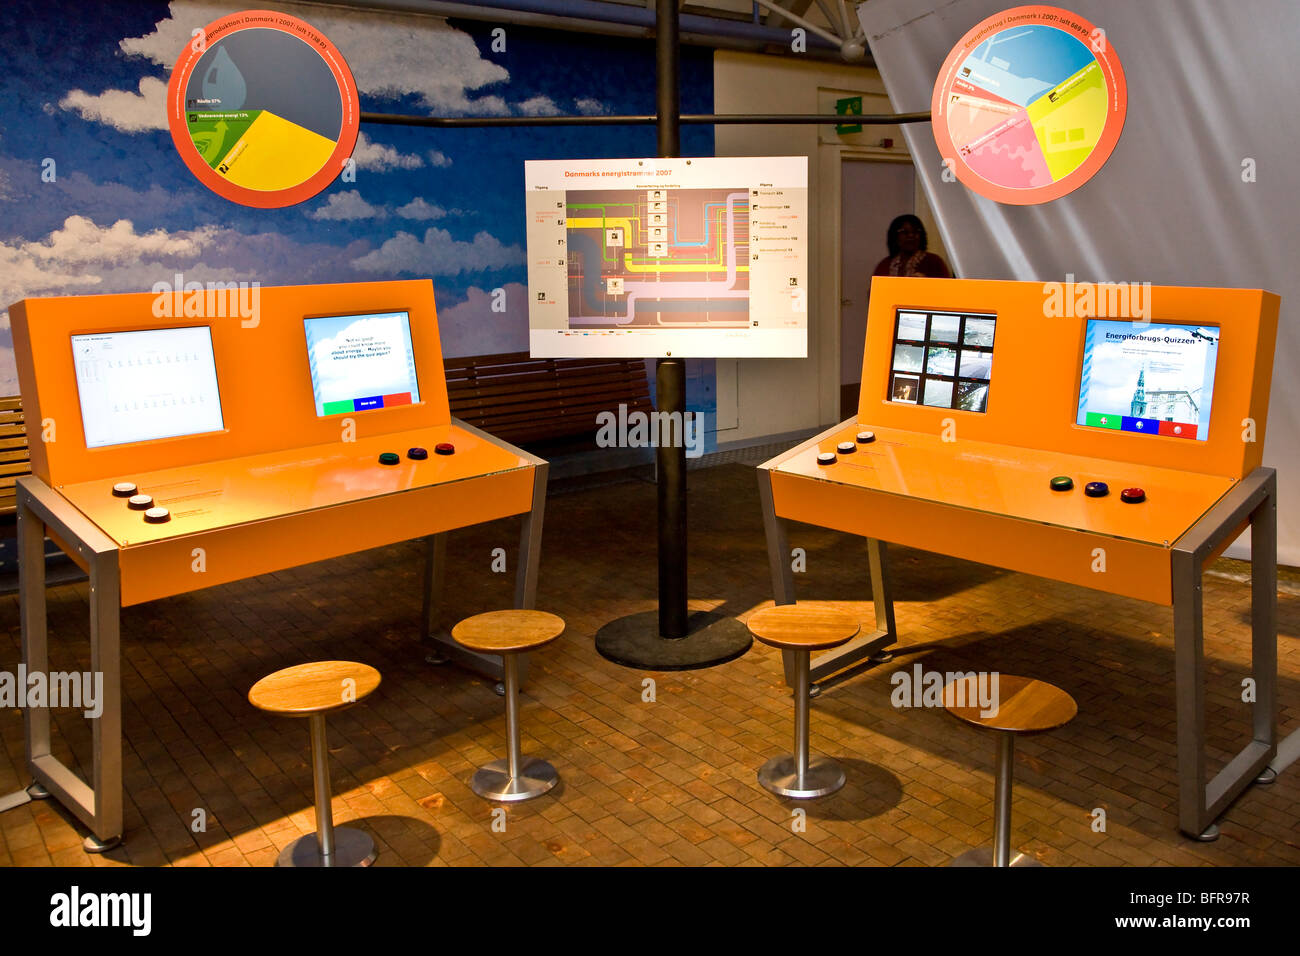 Computers for simulating the energy consumption in Denmark - Stock Image